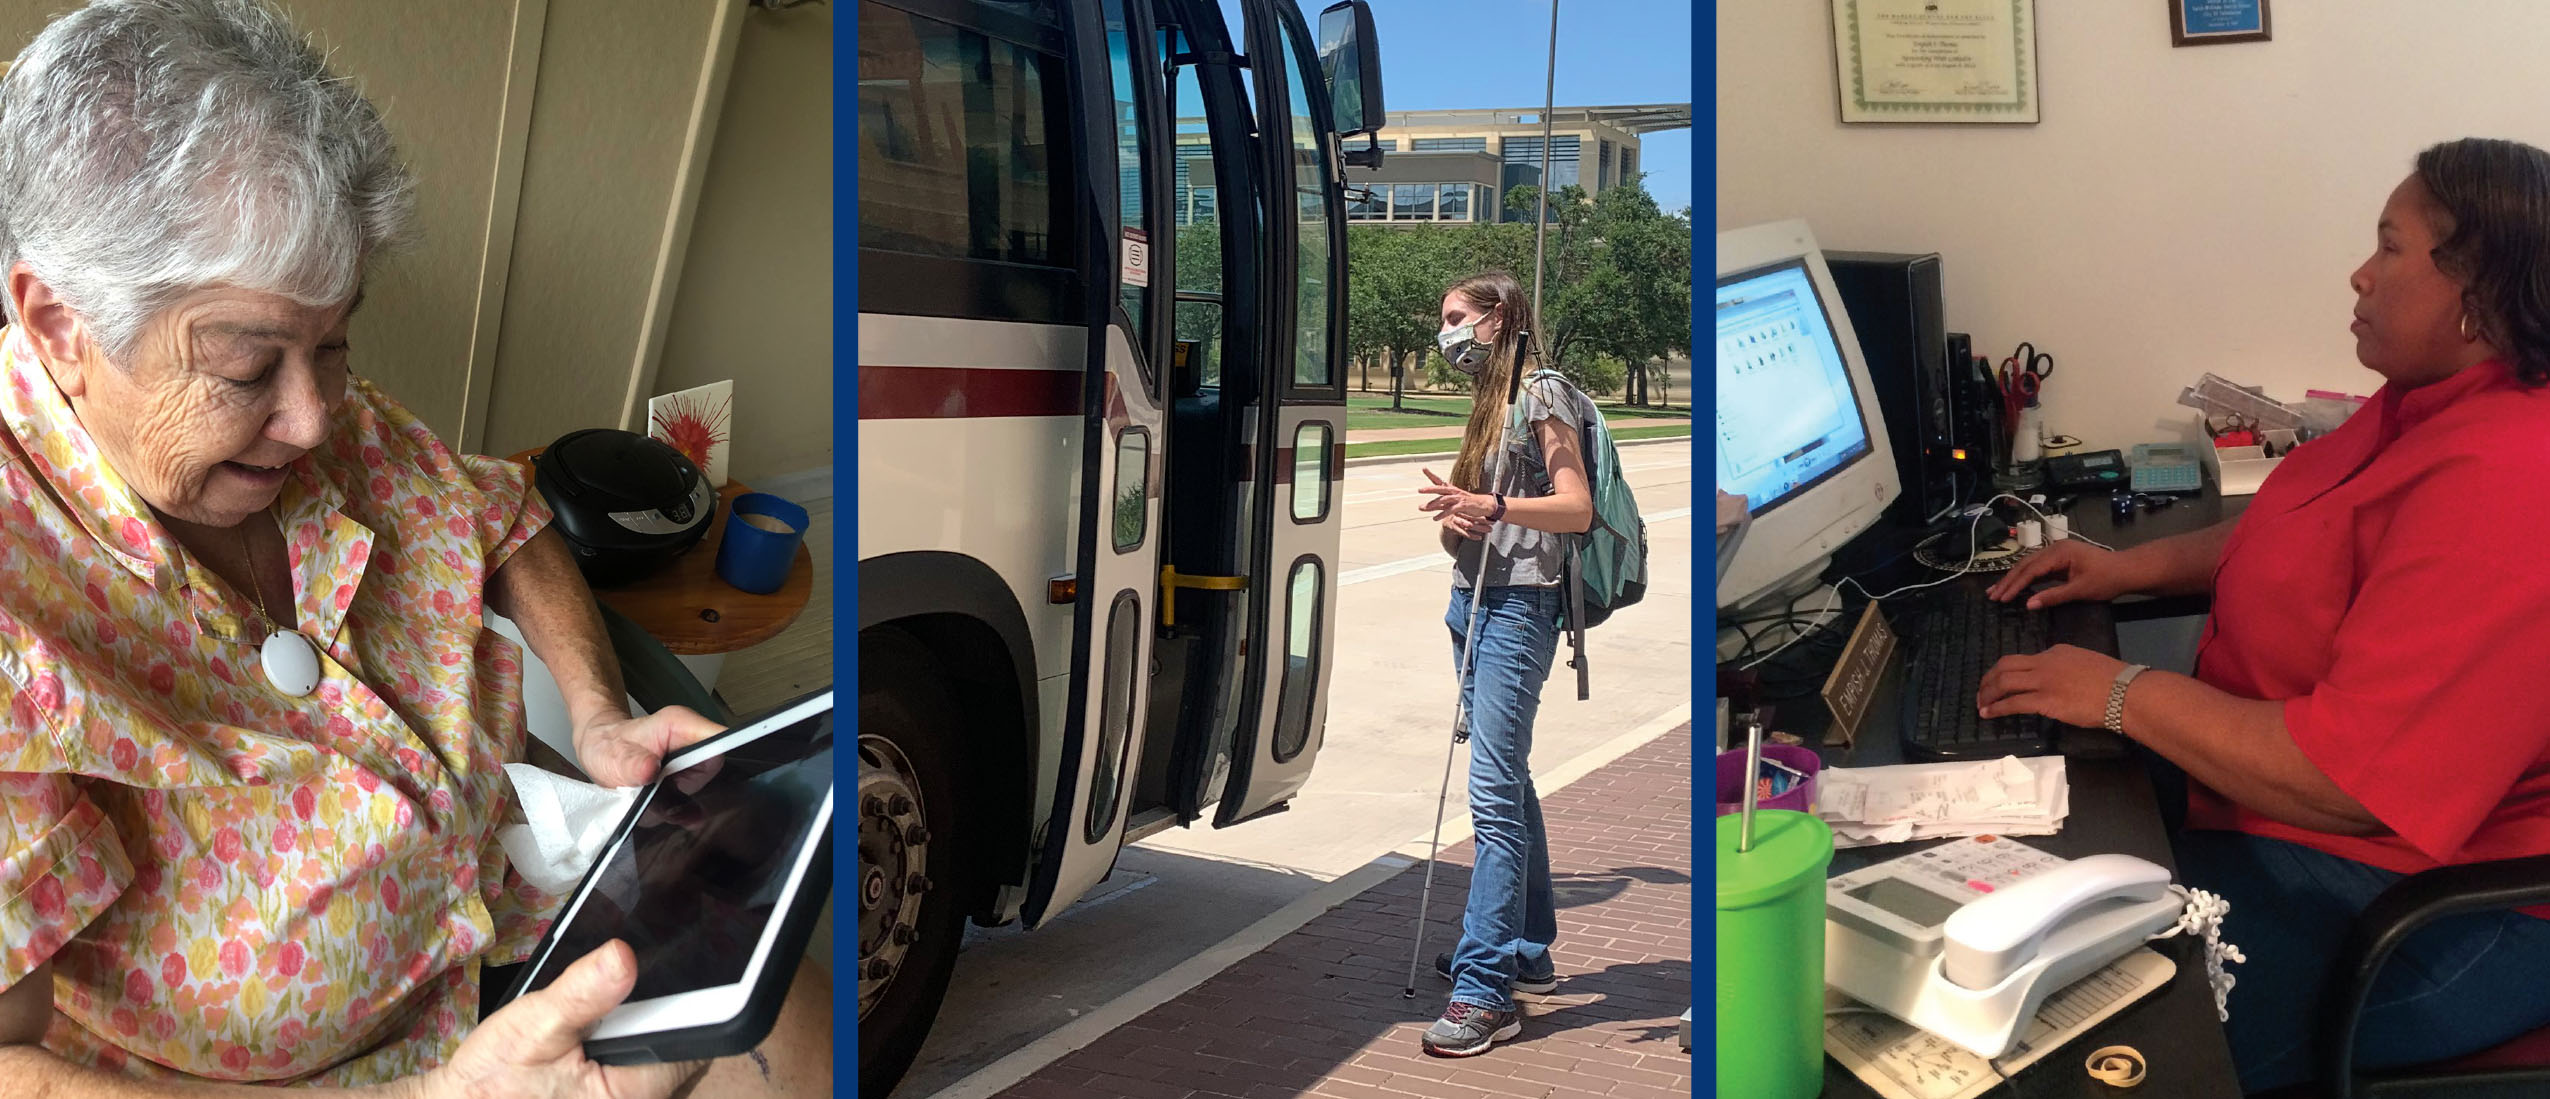 A collage of three photos: an older White woman using a tablet at home, a younger White woman with a white cane boarding a public bus, and a middle aged Black woman using computer access technology at work.